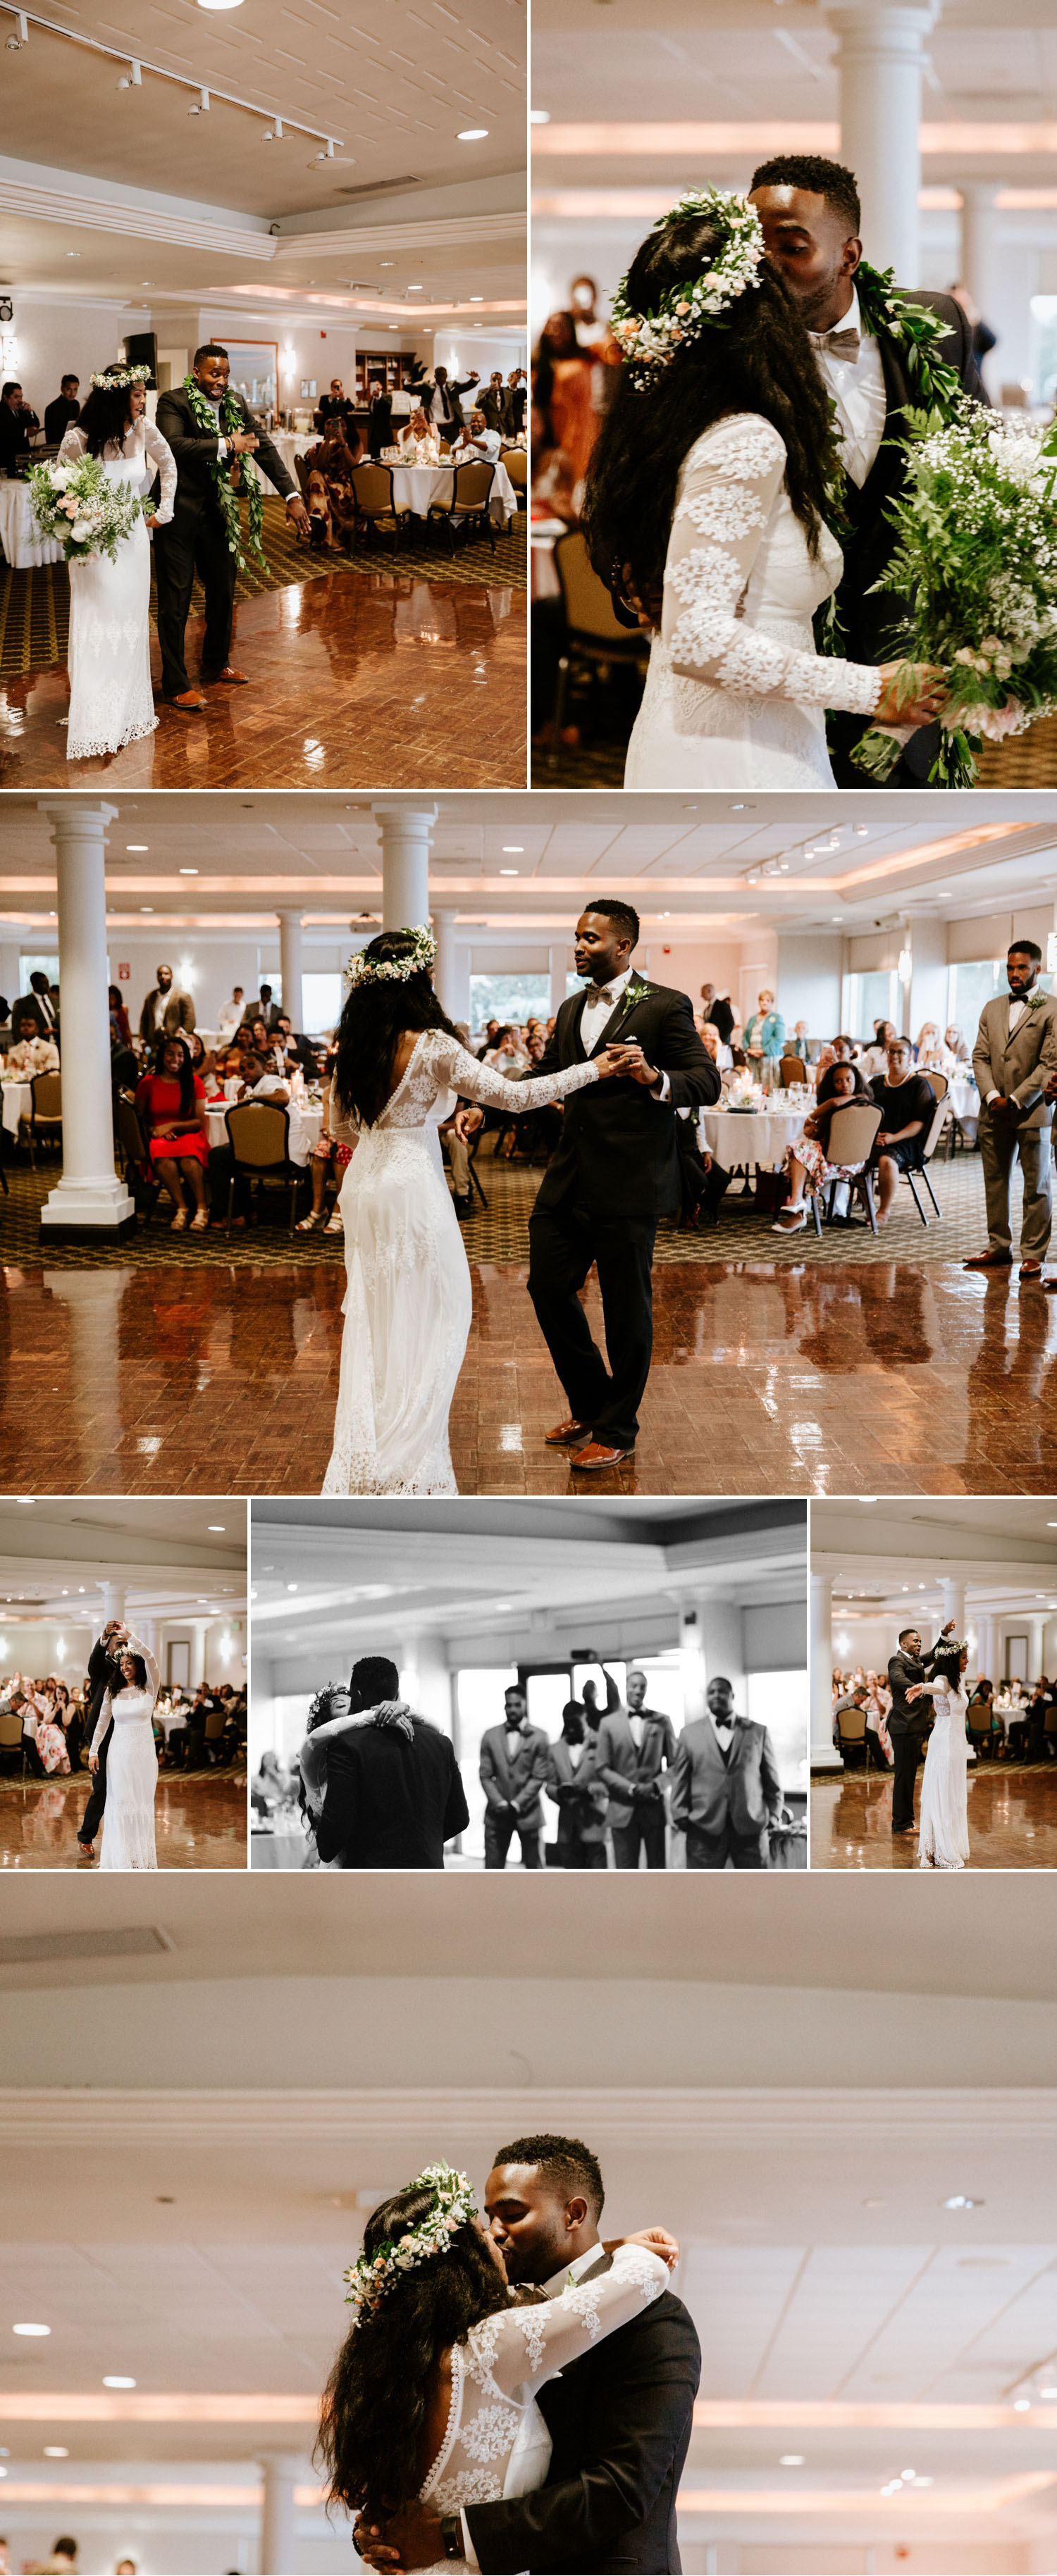 First dances San Diego harbor wedding